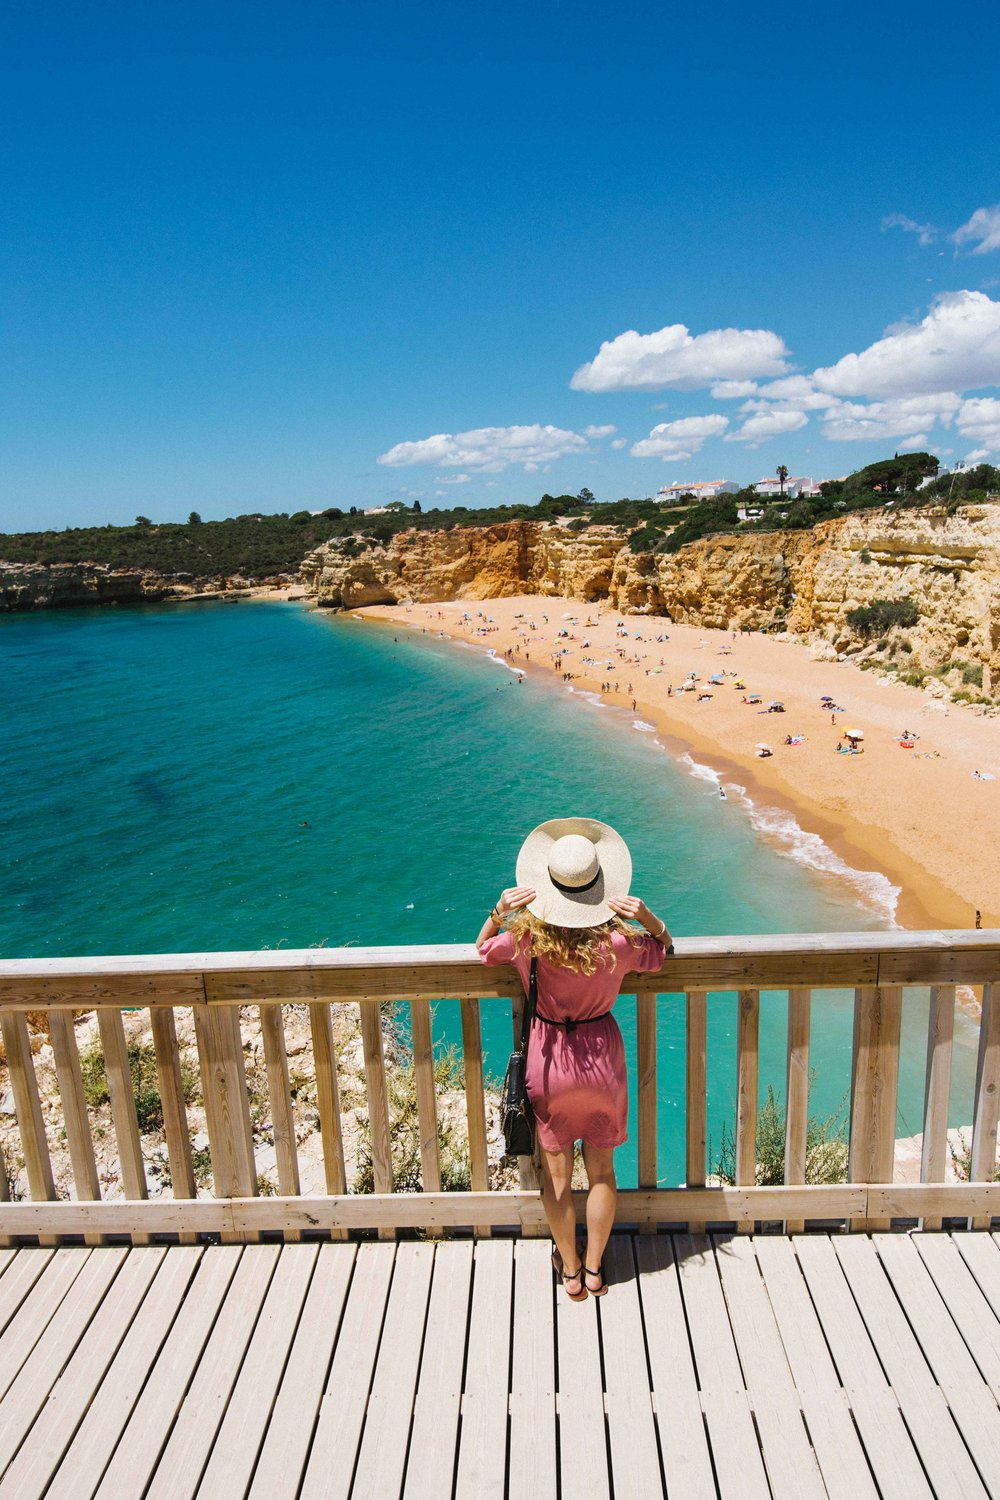 Myself admiring the beautiful beaches of Algarve, Portugal.